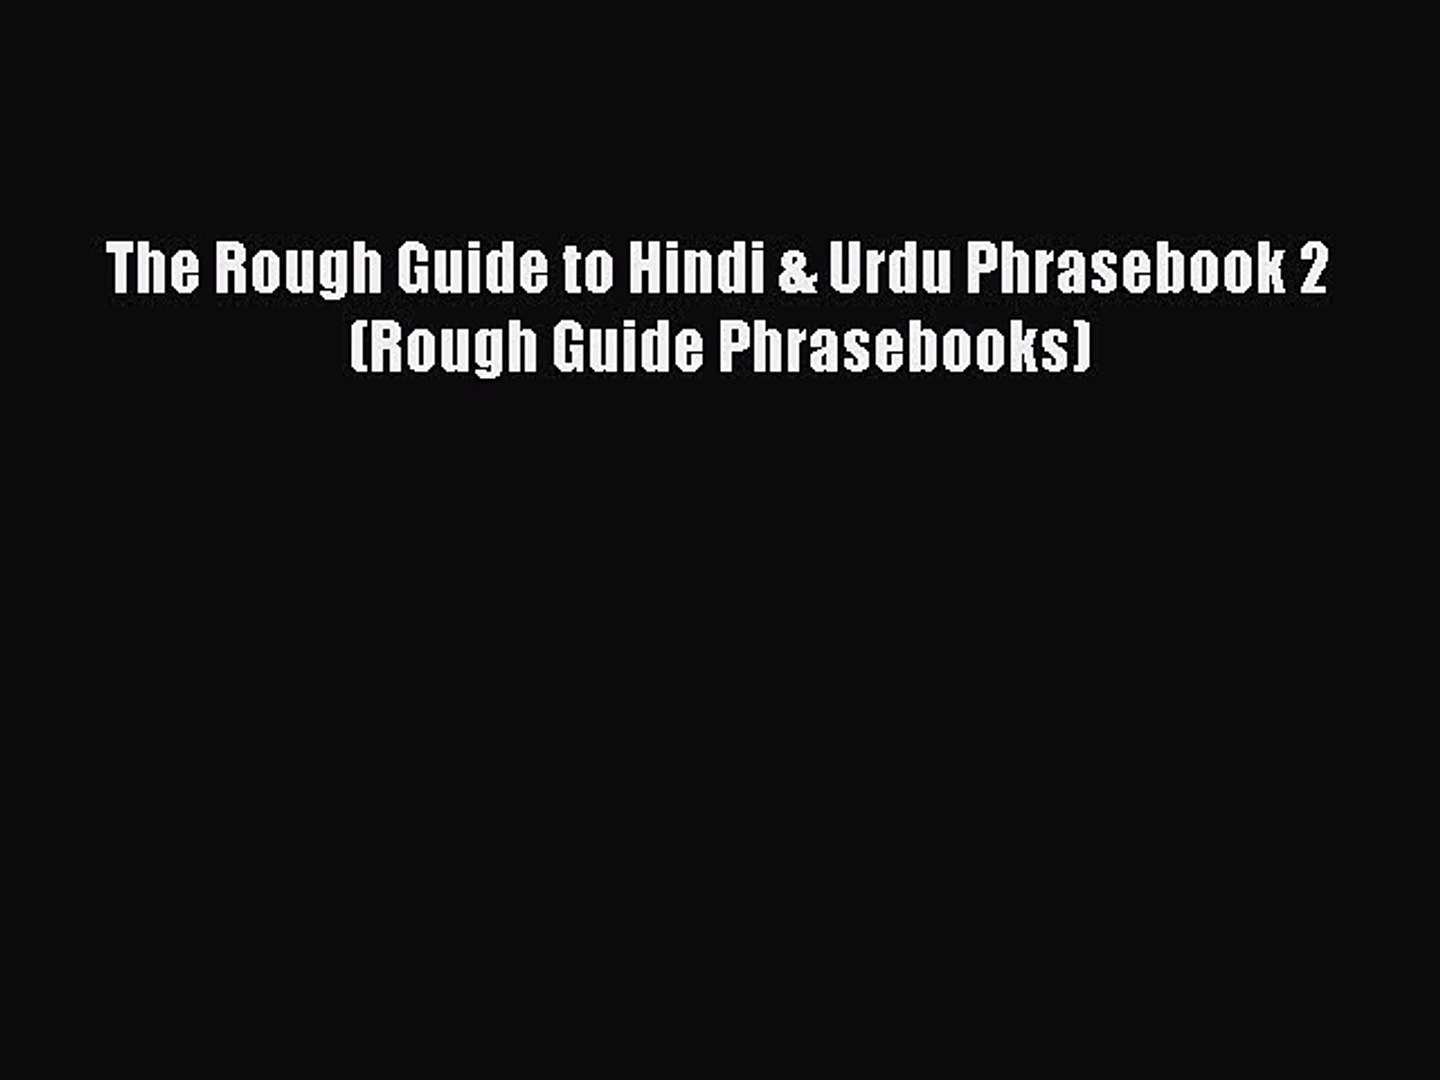 The Rough Guide to Hindi /& Urdu Dictionary Phrasebook 3